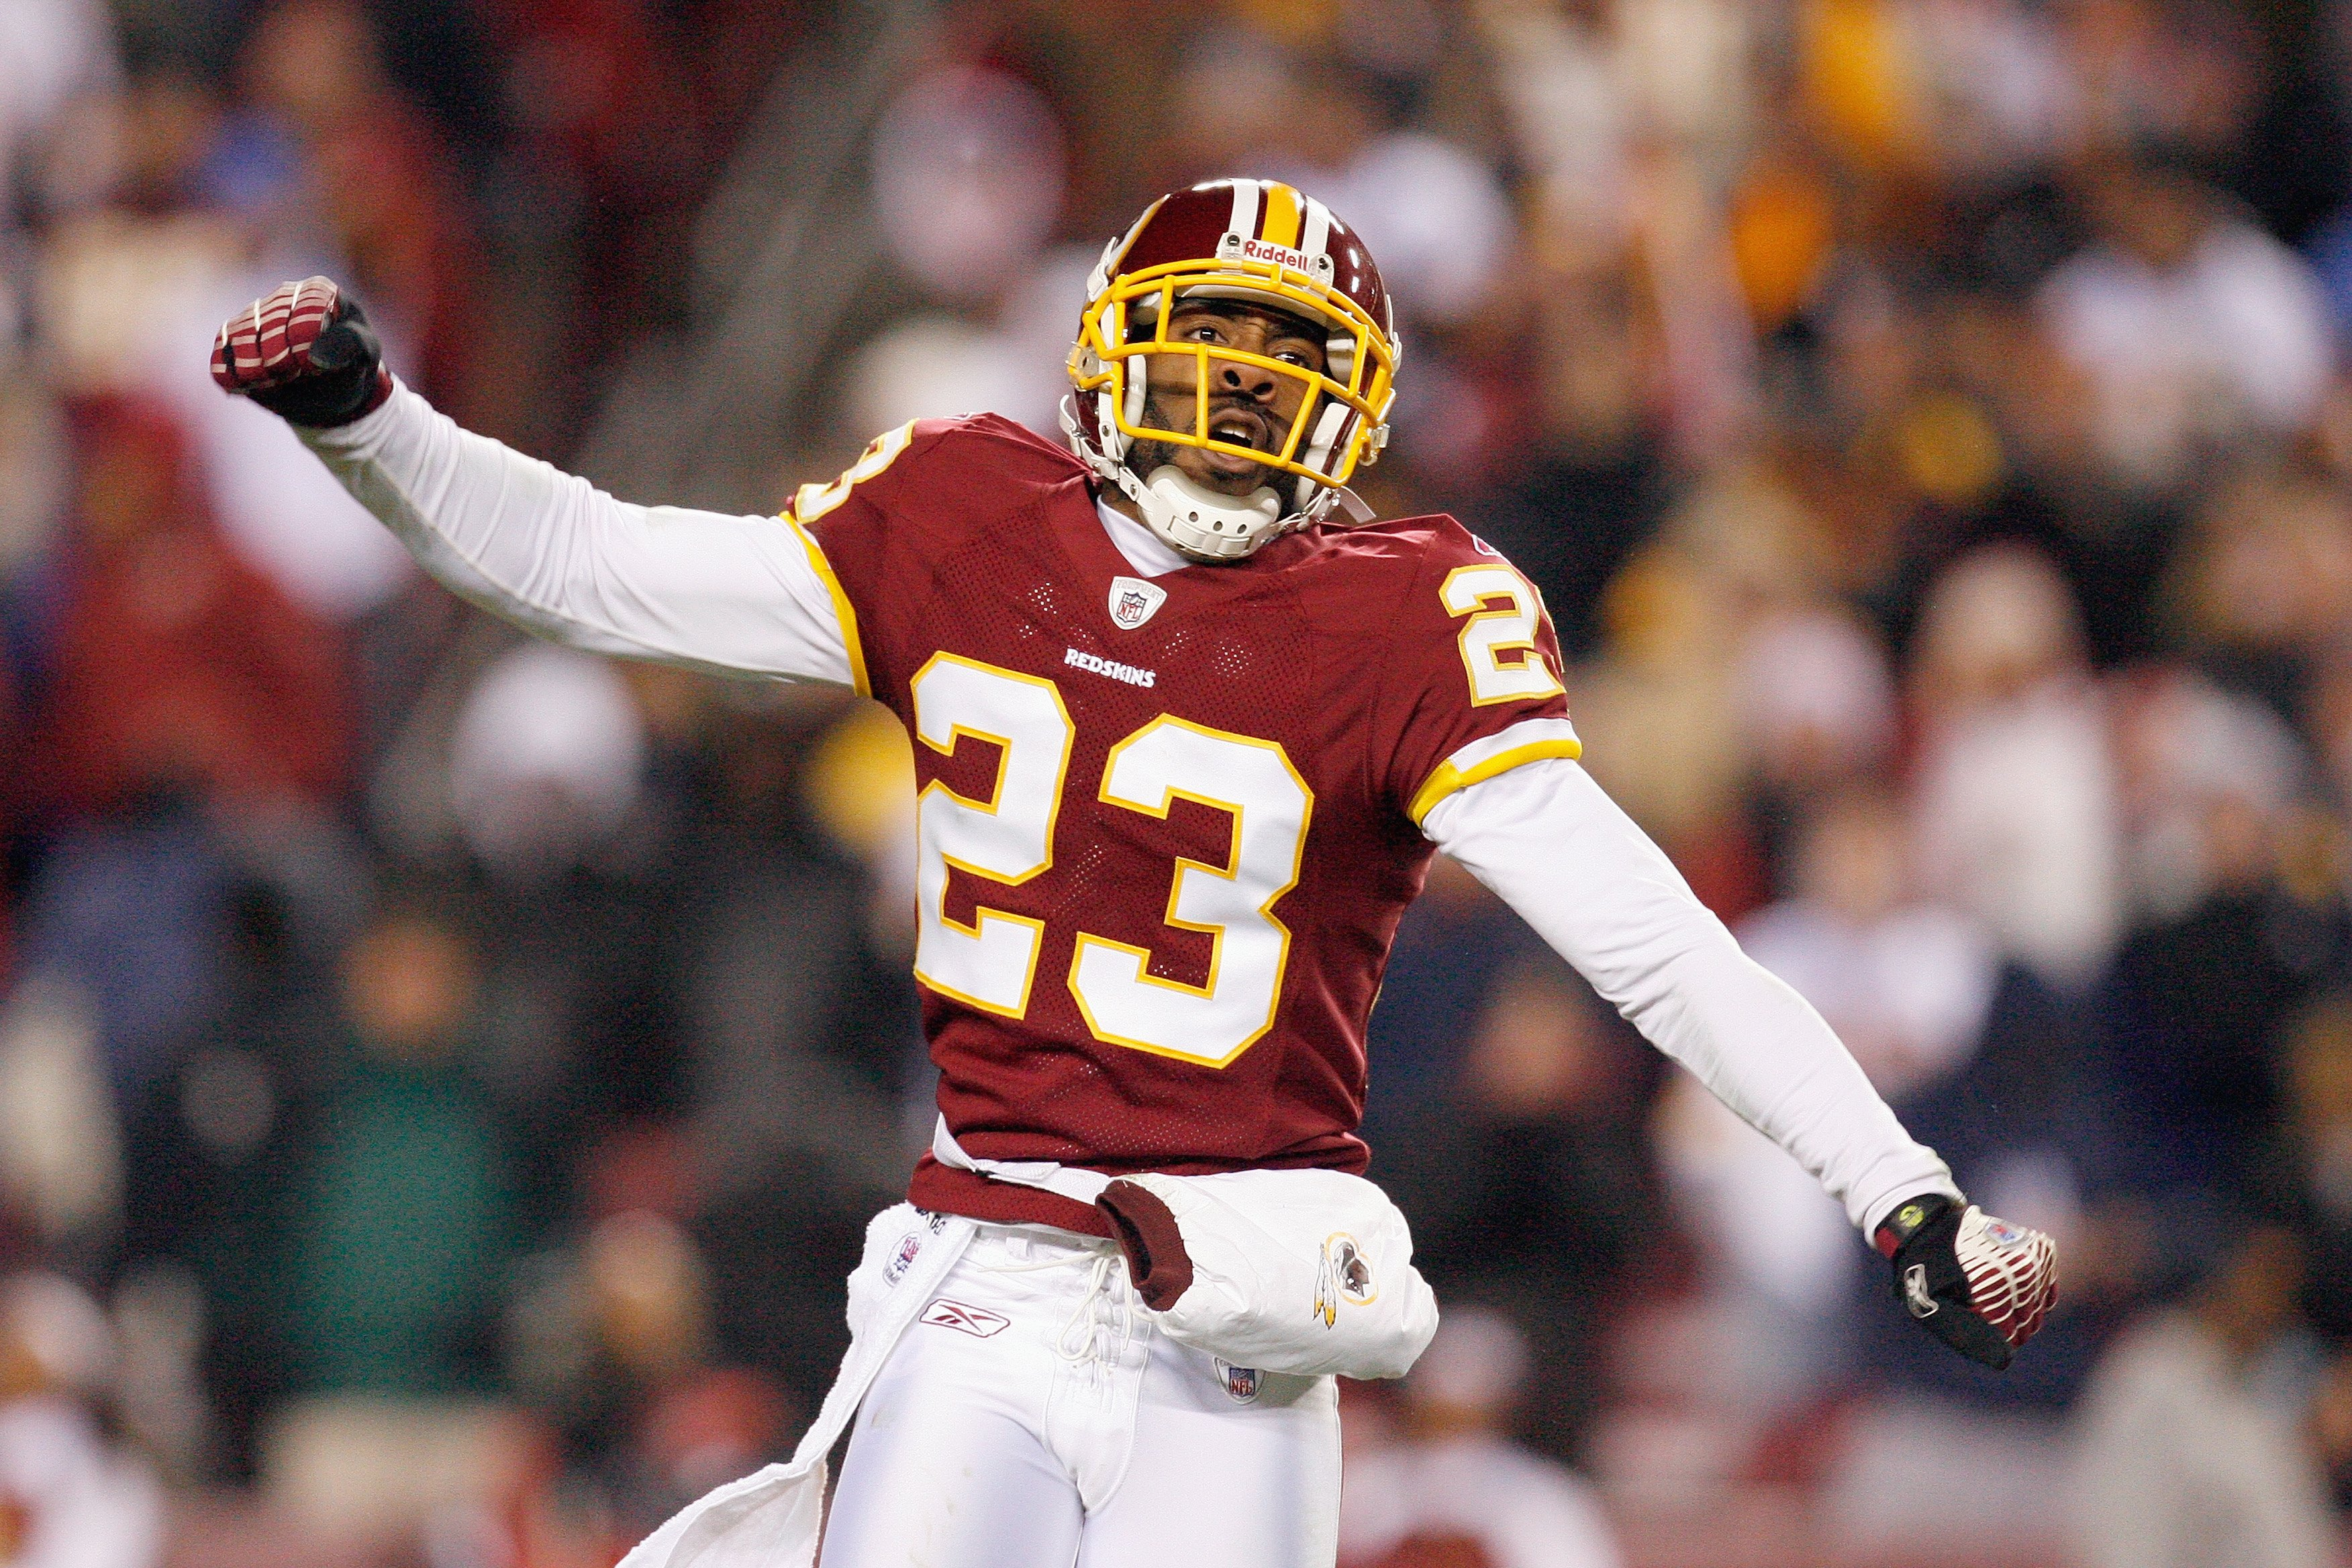 LANDOVER, MD - DECEMBER 21:  DeAngelo Hall #23 of the Washington Redskins celebrates during the game of the Philadelphia Eagles on December 21, 2008 at FedEx Field in Landover, Maryland.  (Photo by Kevin C. Cox/Getty Images)